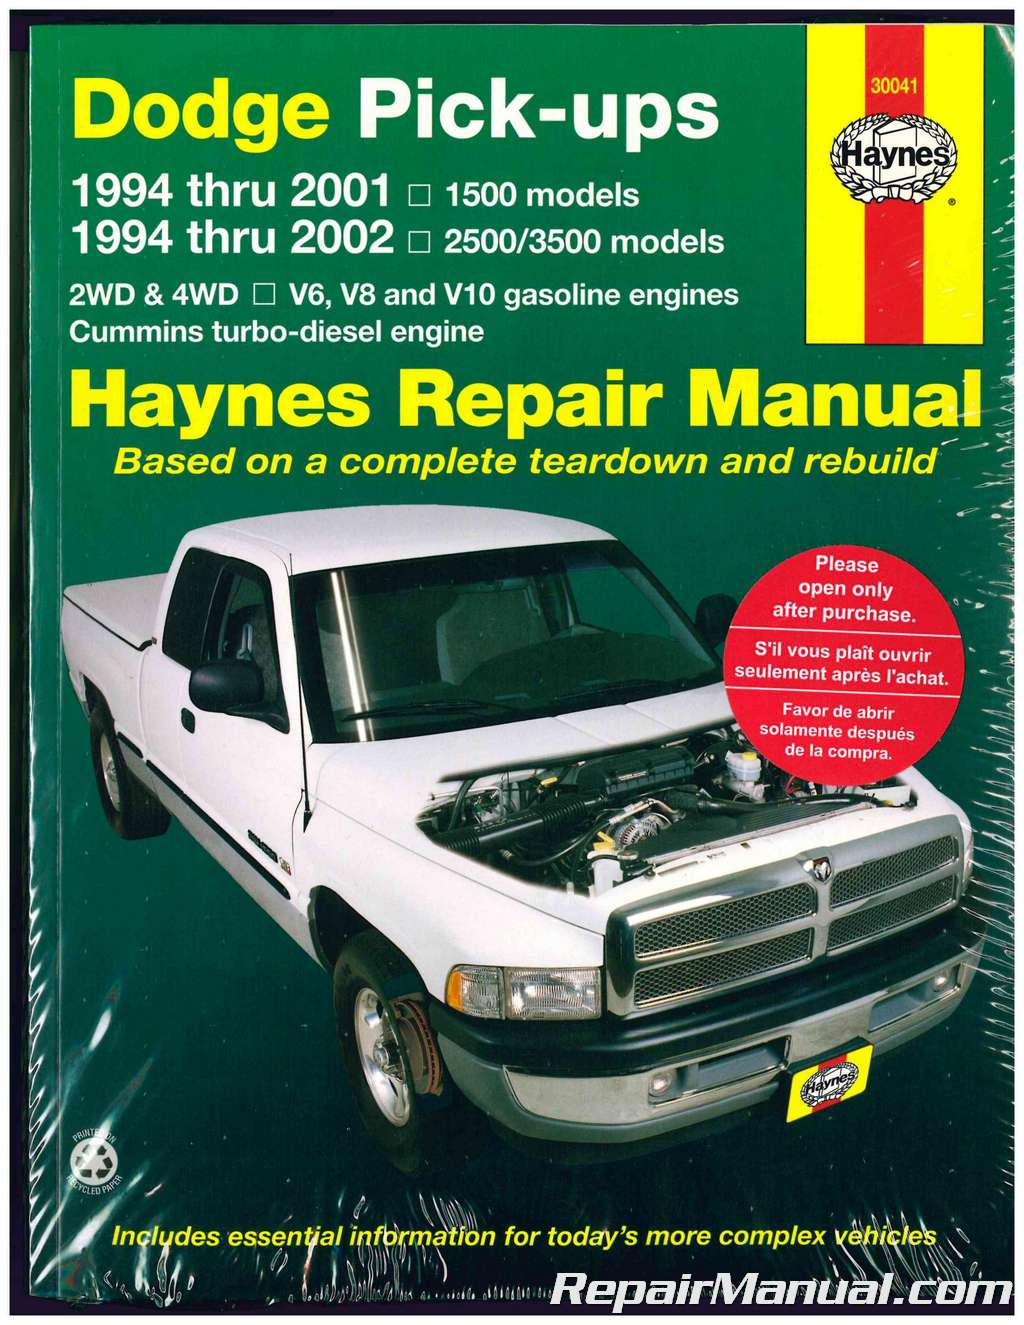 Dodge 1994-2001 1500 1994-2002 2500 3500 Pickup Truck Haynes Repair Manual